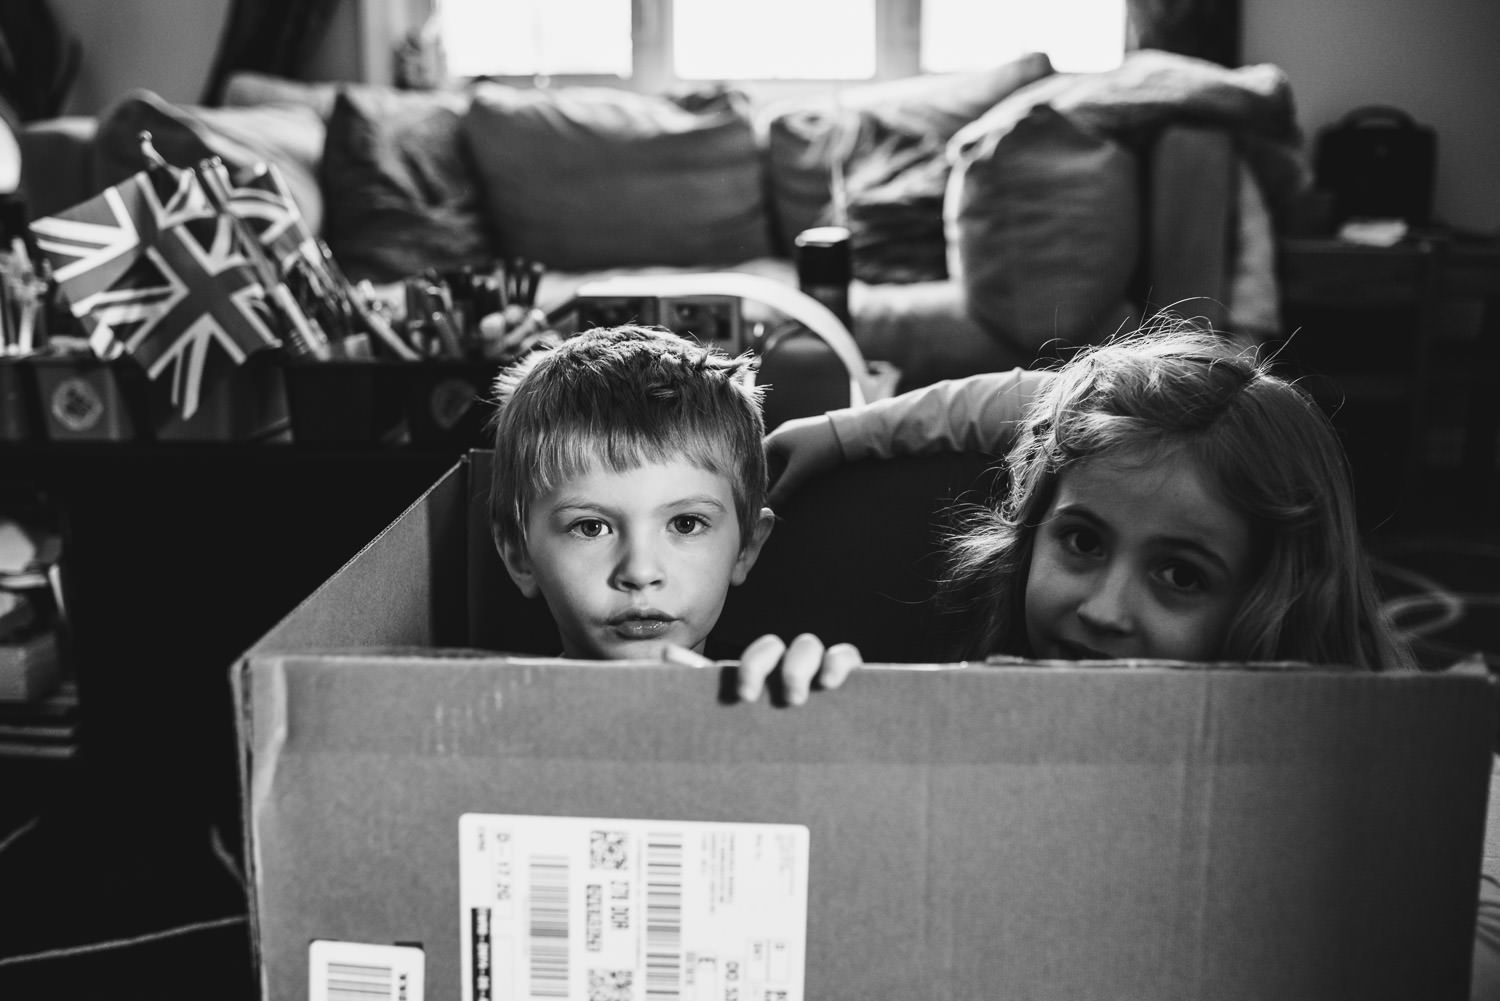 Two children play inside a cardboard box.